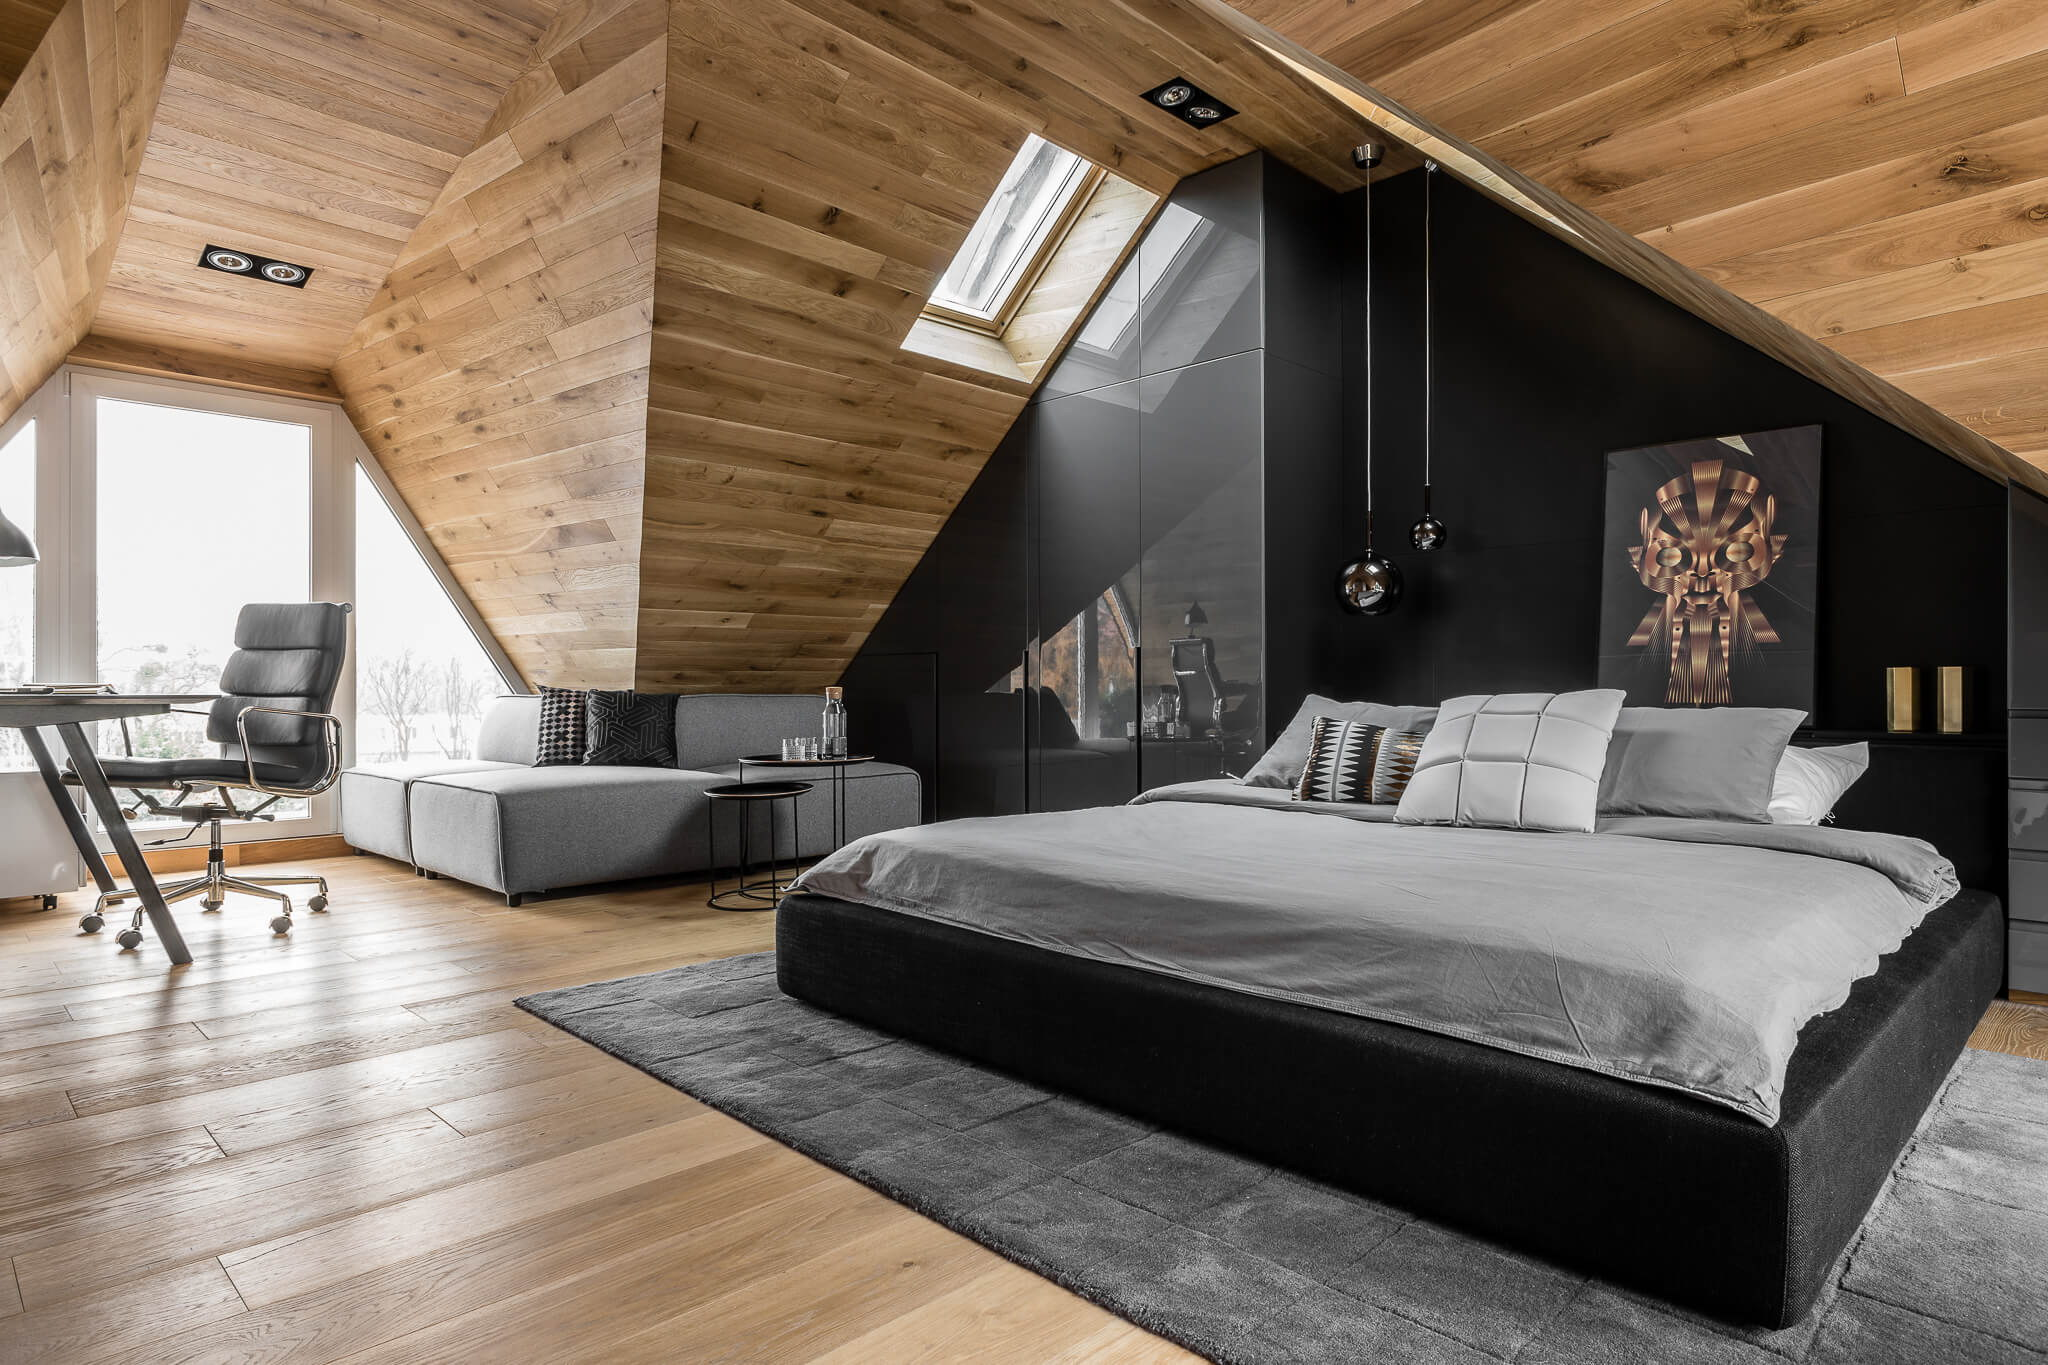 Okrezna Attic by Raca Architekci